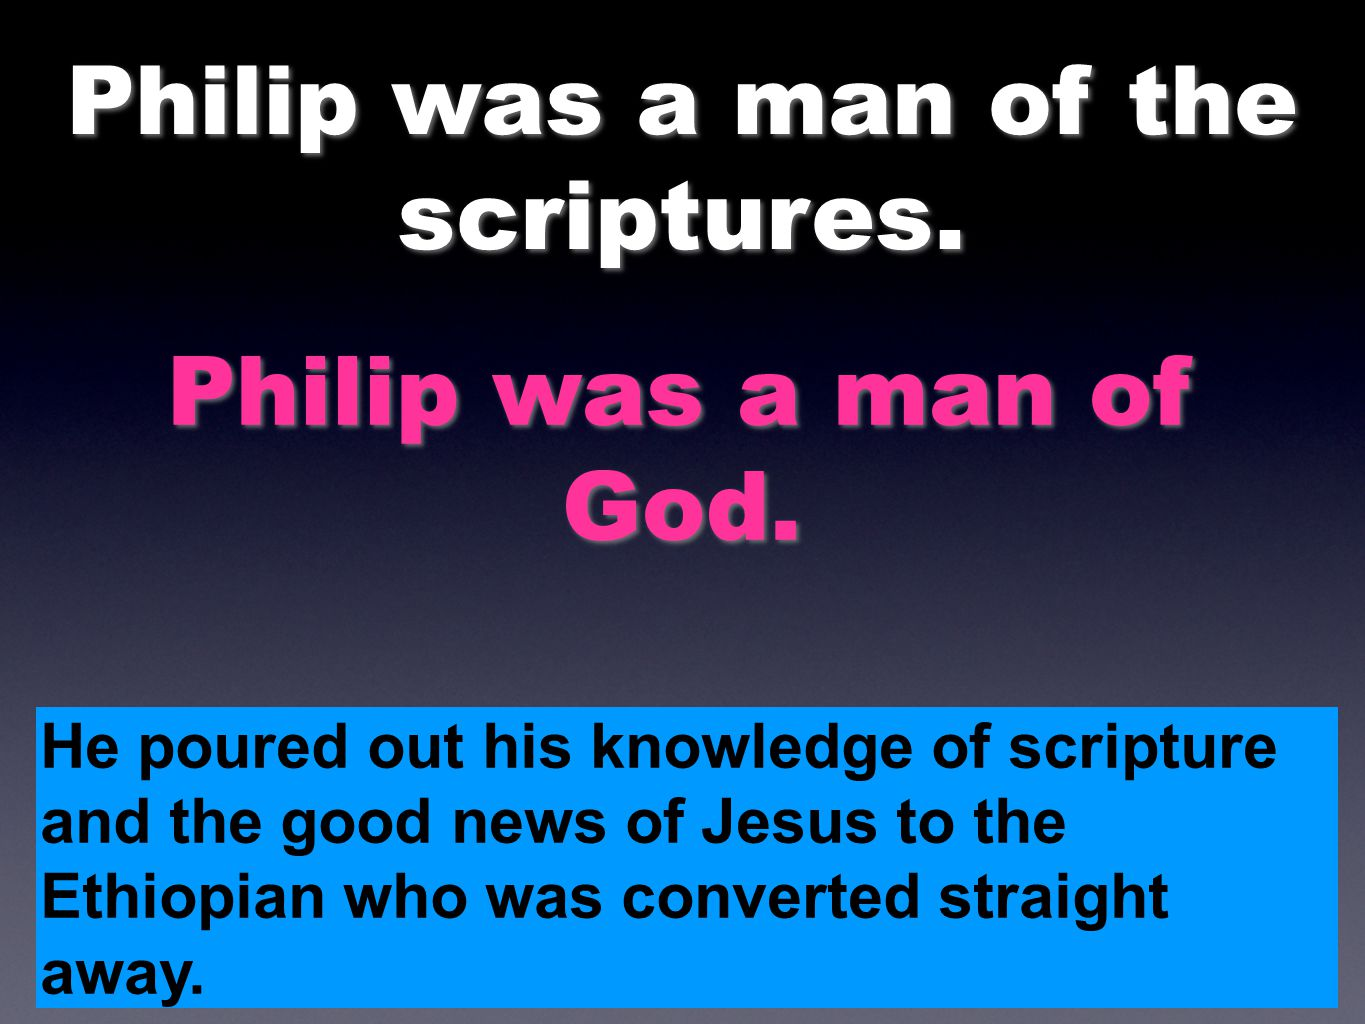 Philip was a man of the scriptures.